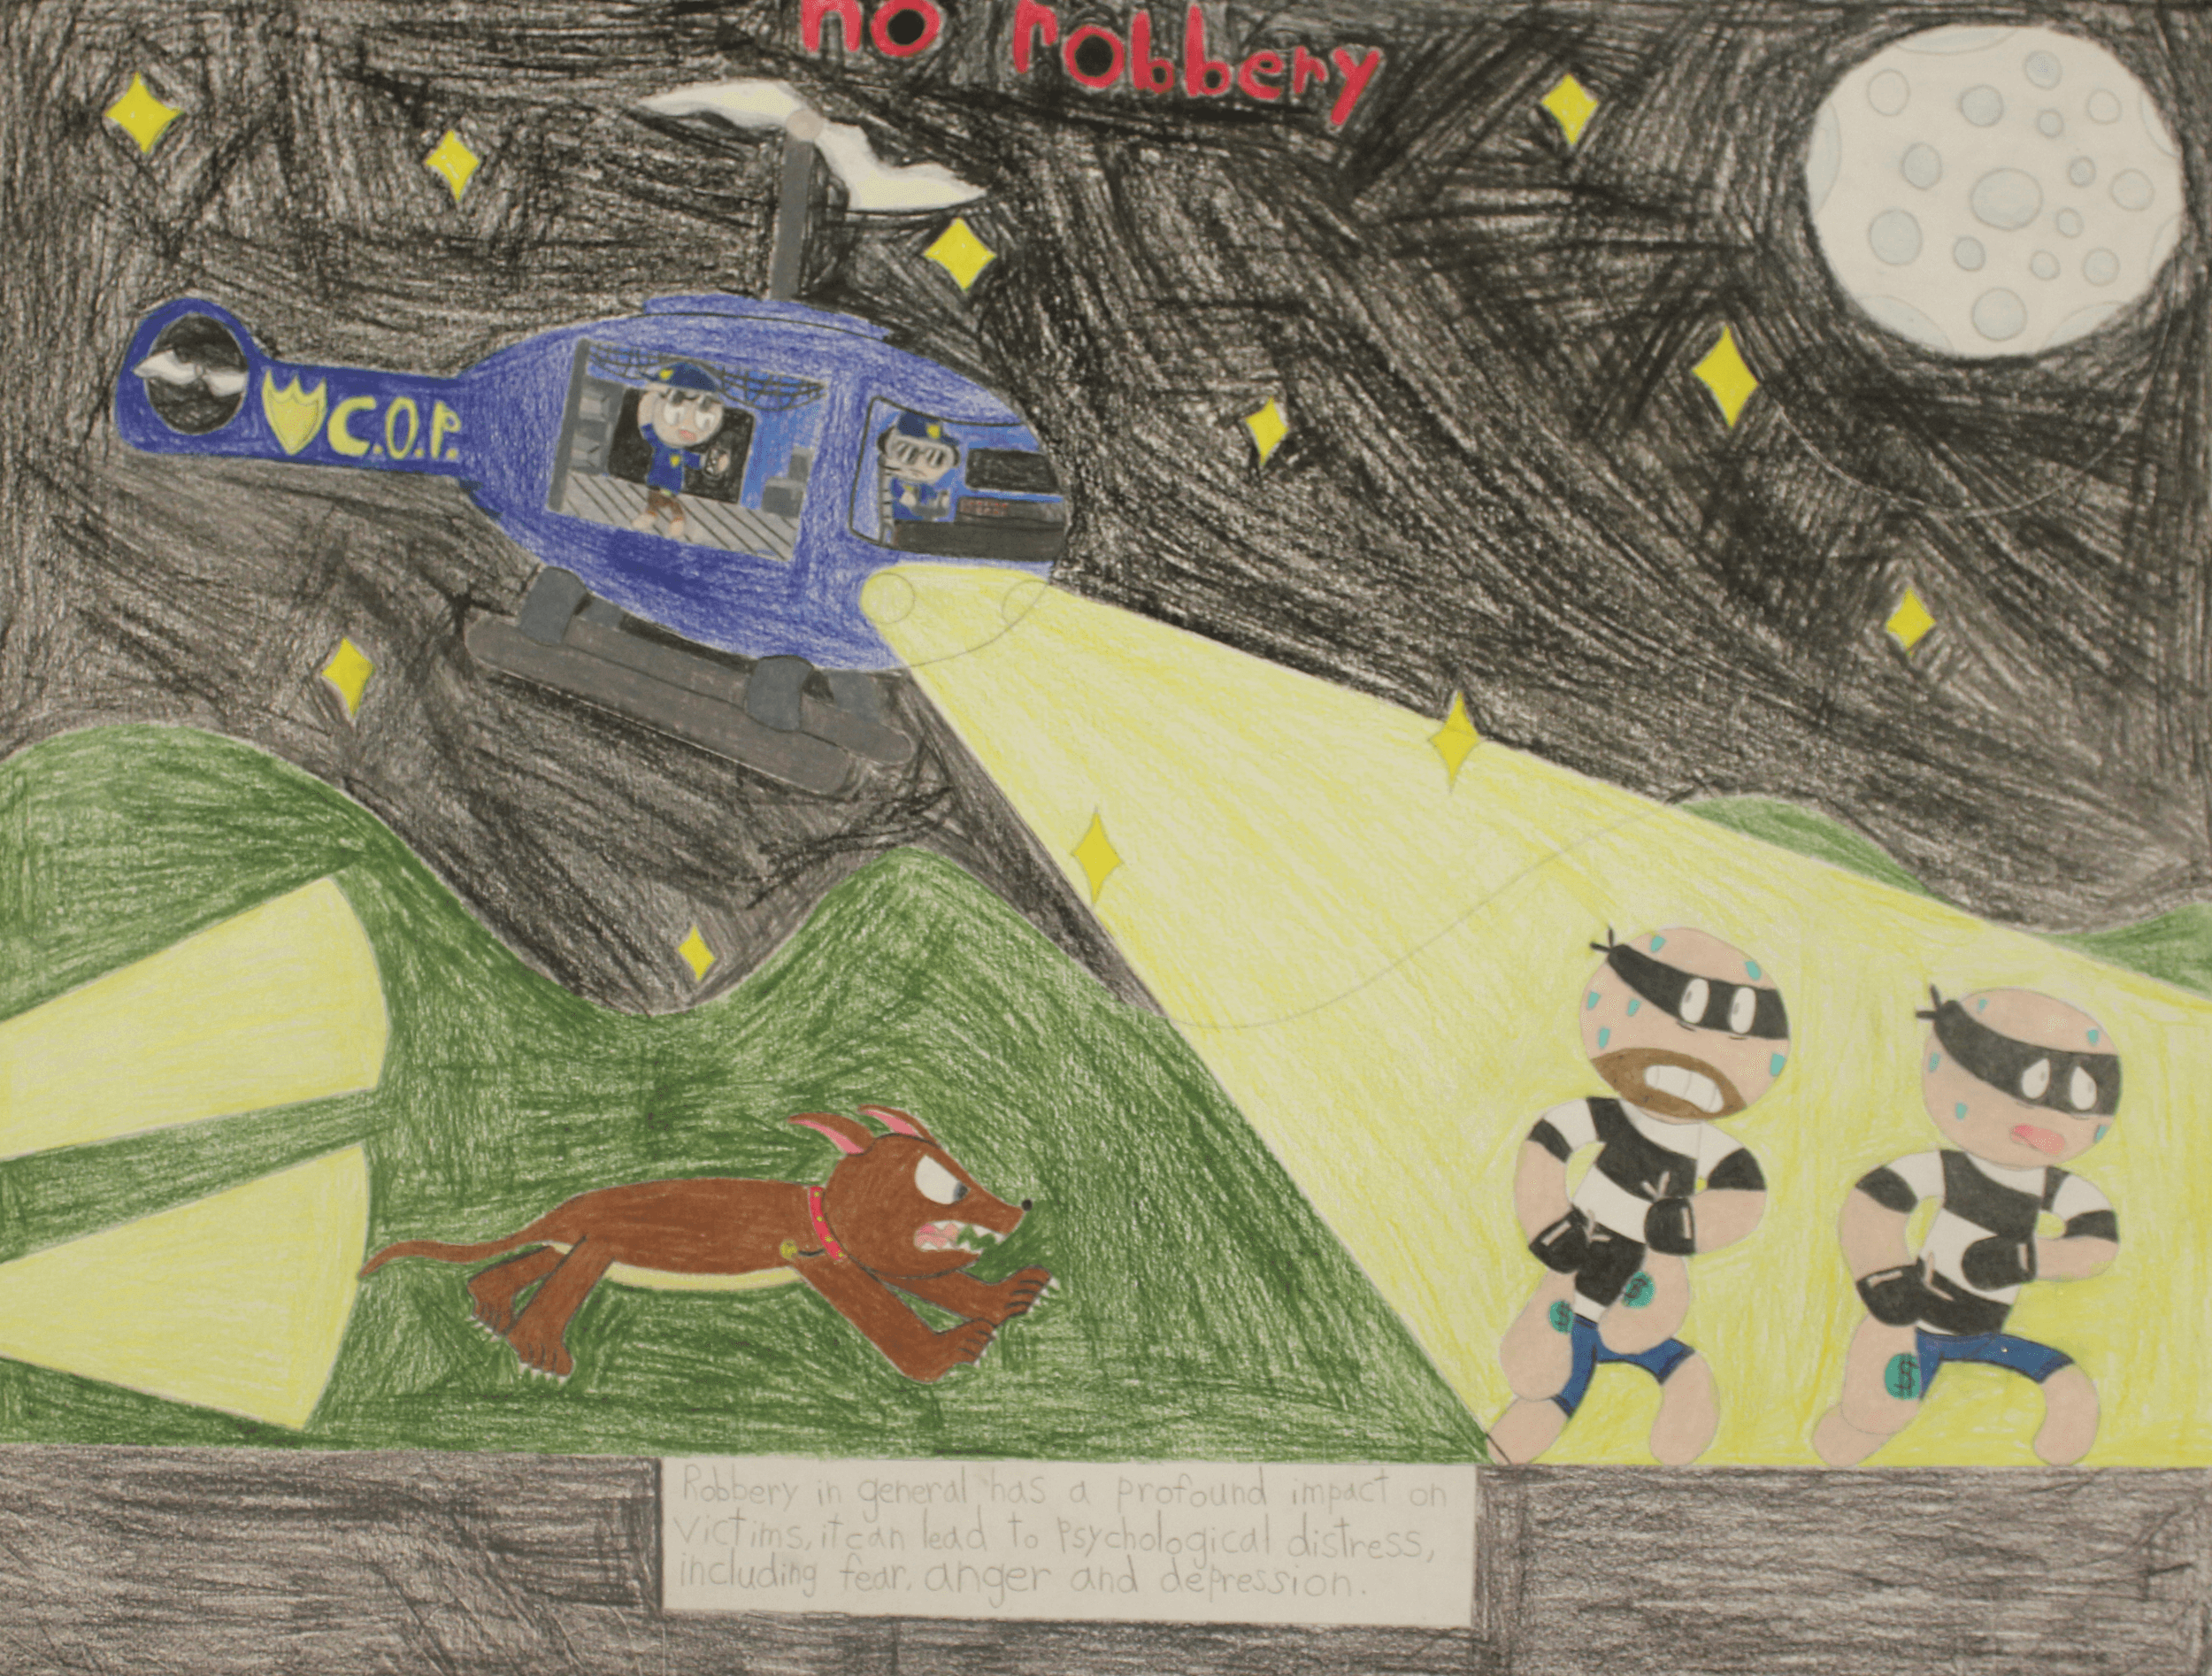 A drawing of a police helicopter and dog chasing two robbers with the title No Robbery